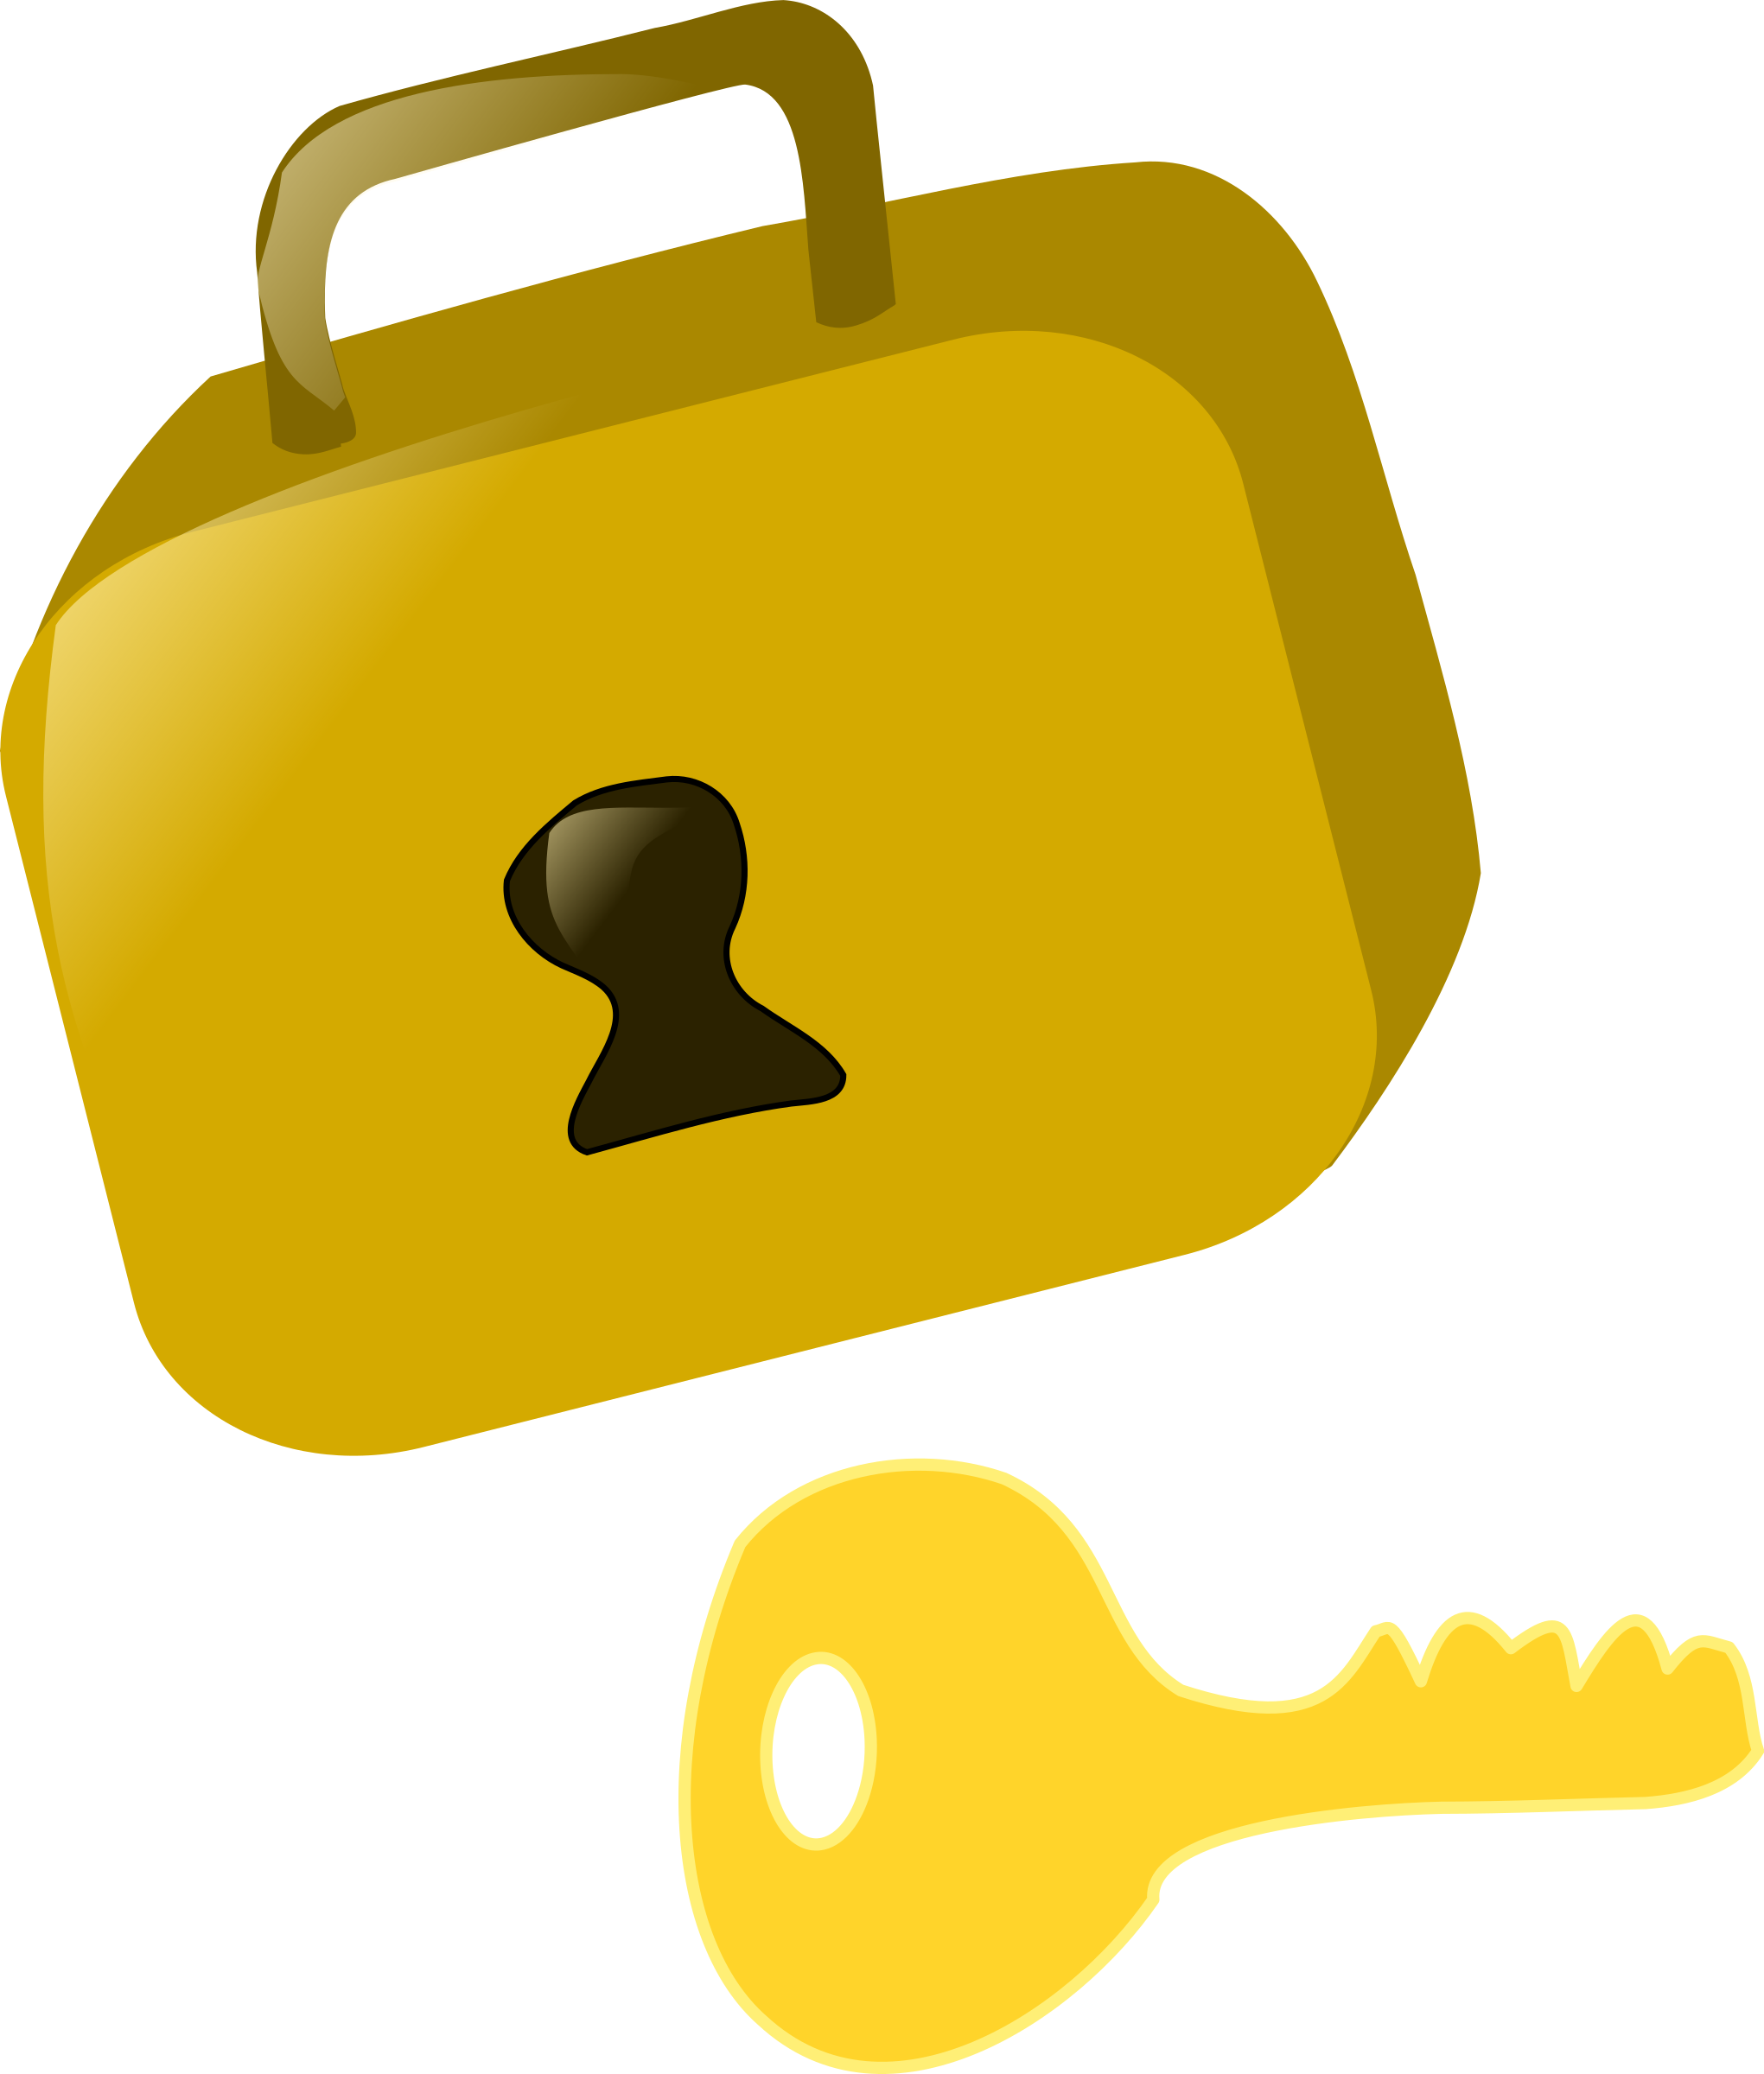 Clipart door key hole. Lock and big image